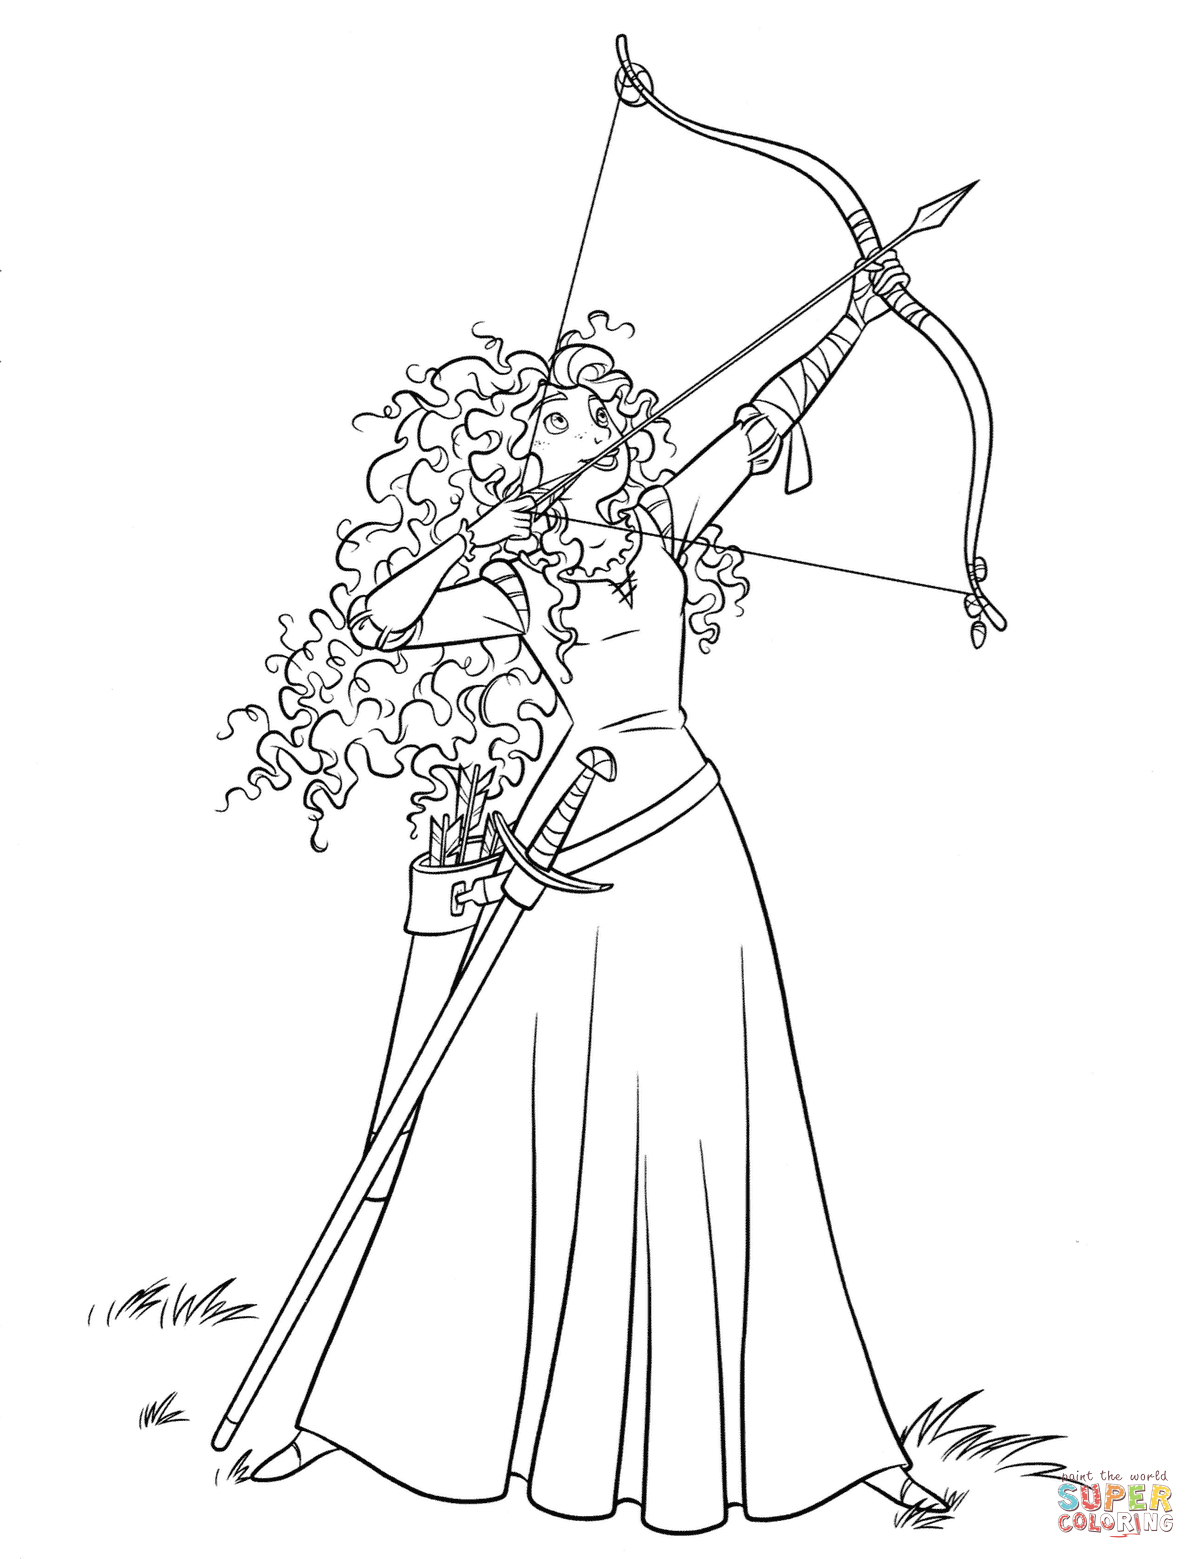 Creative Image of Merida Coloring Pages